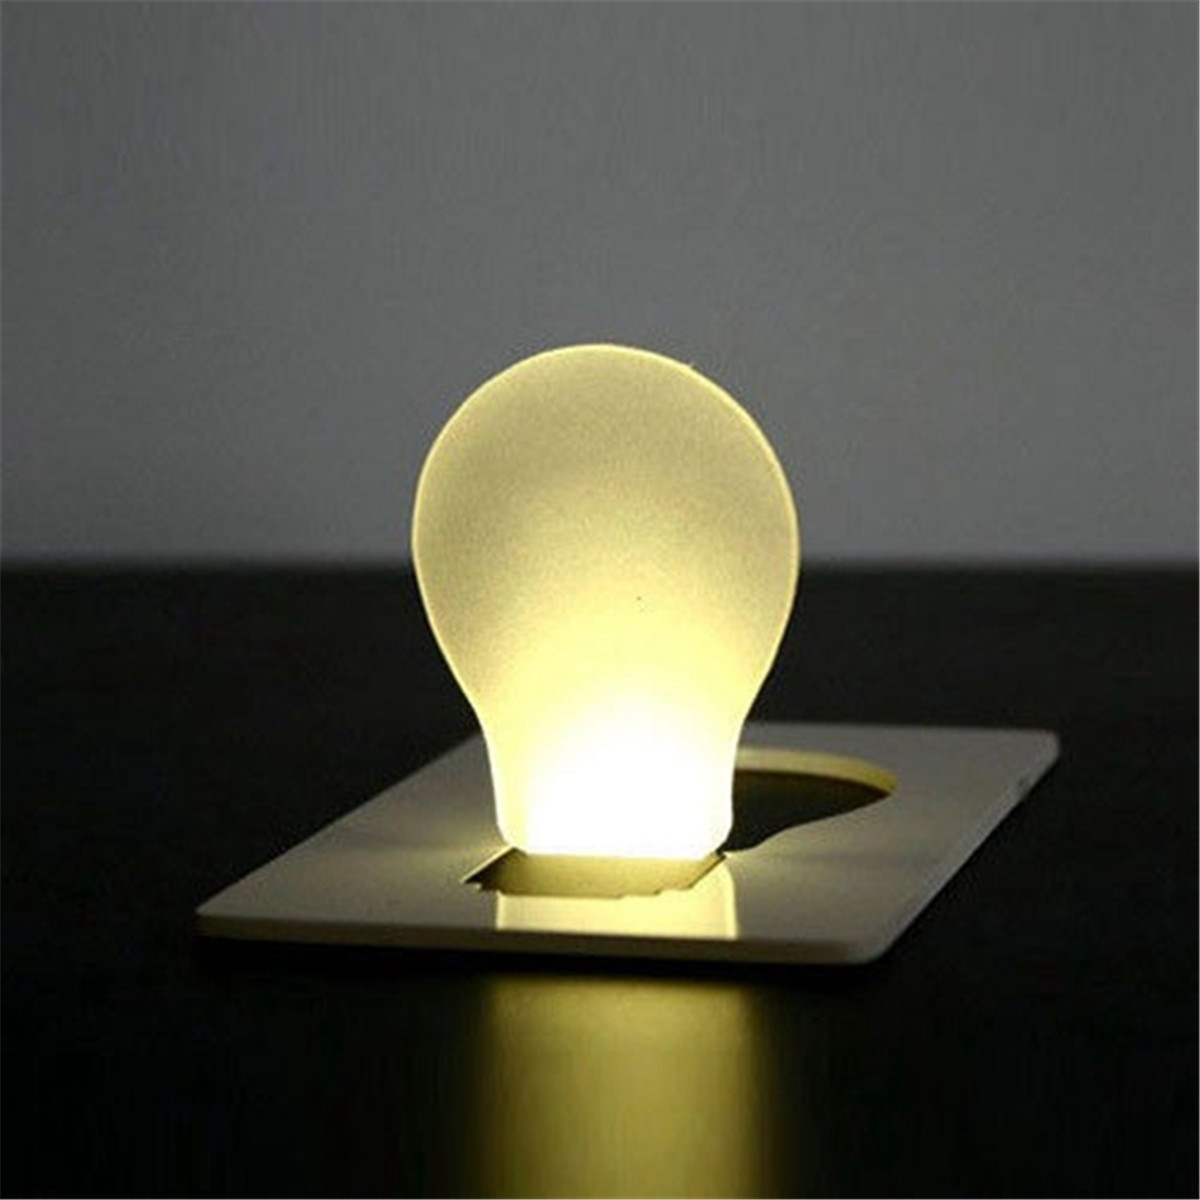 Smuxi Mini Wallet For Pocket Credit Card Size Portable LED Night Light Lamp Bulbs Cute Paper Card Flashlight